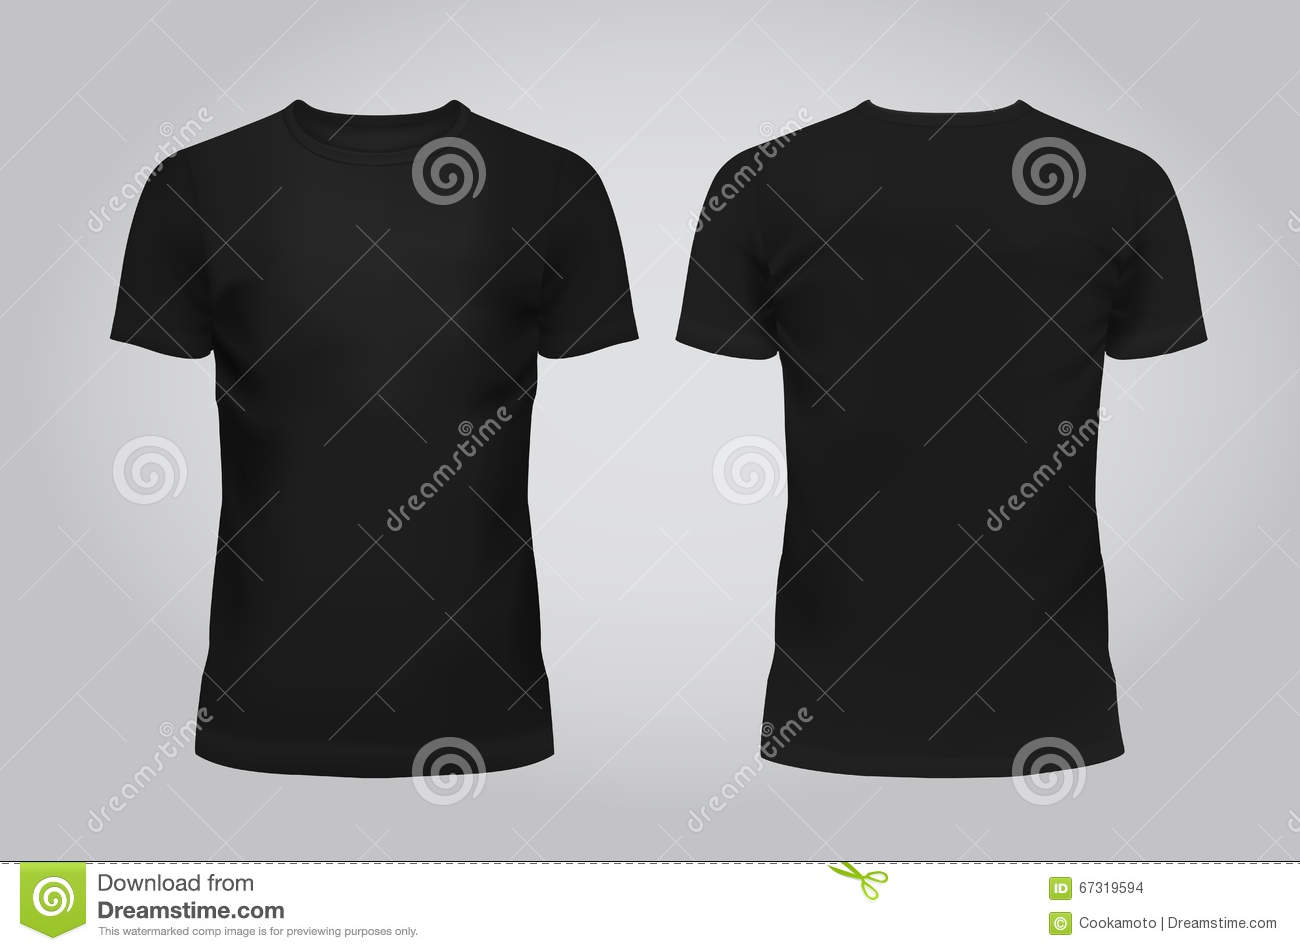 Black t shirt model template - Vector Illustration Of Design Template Black Men T Shirt Front And Back On A